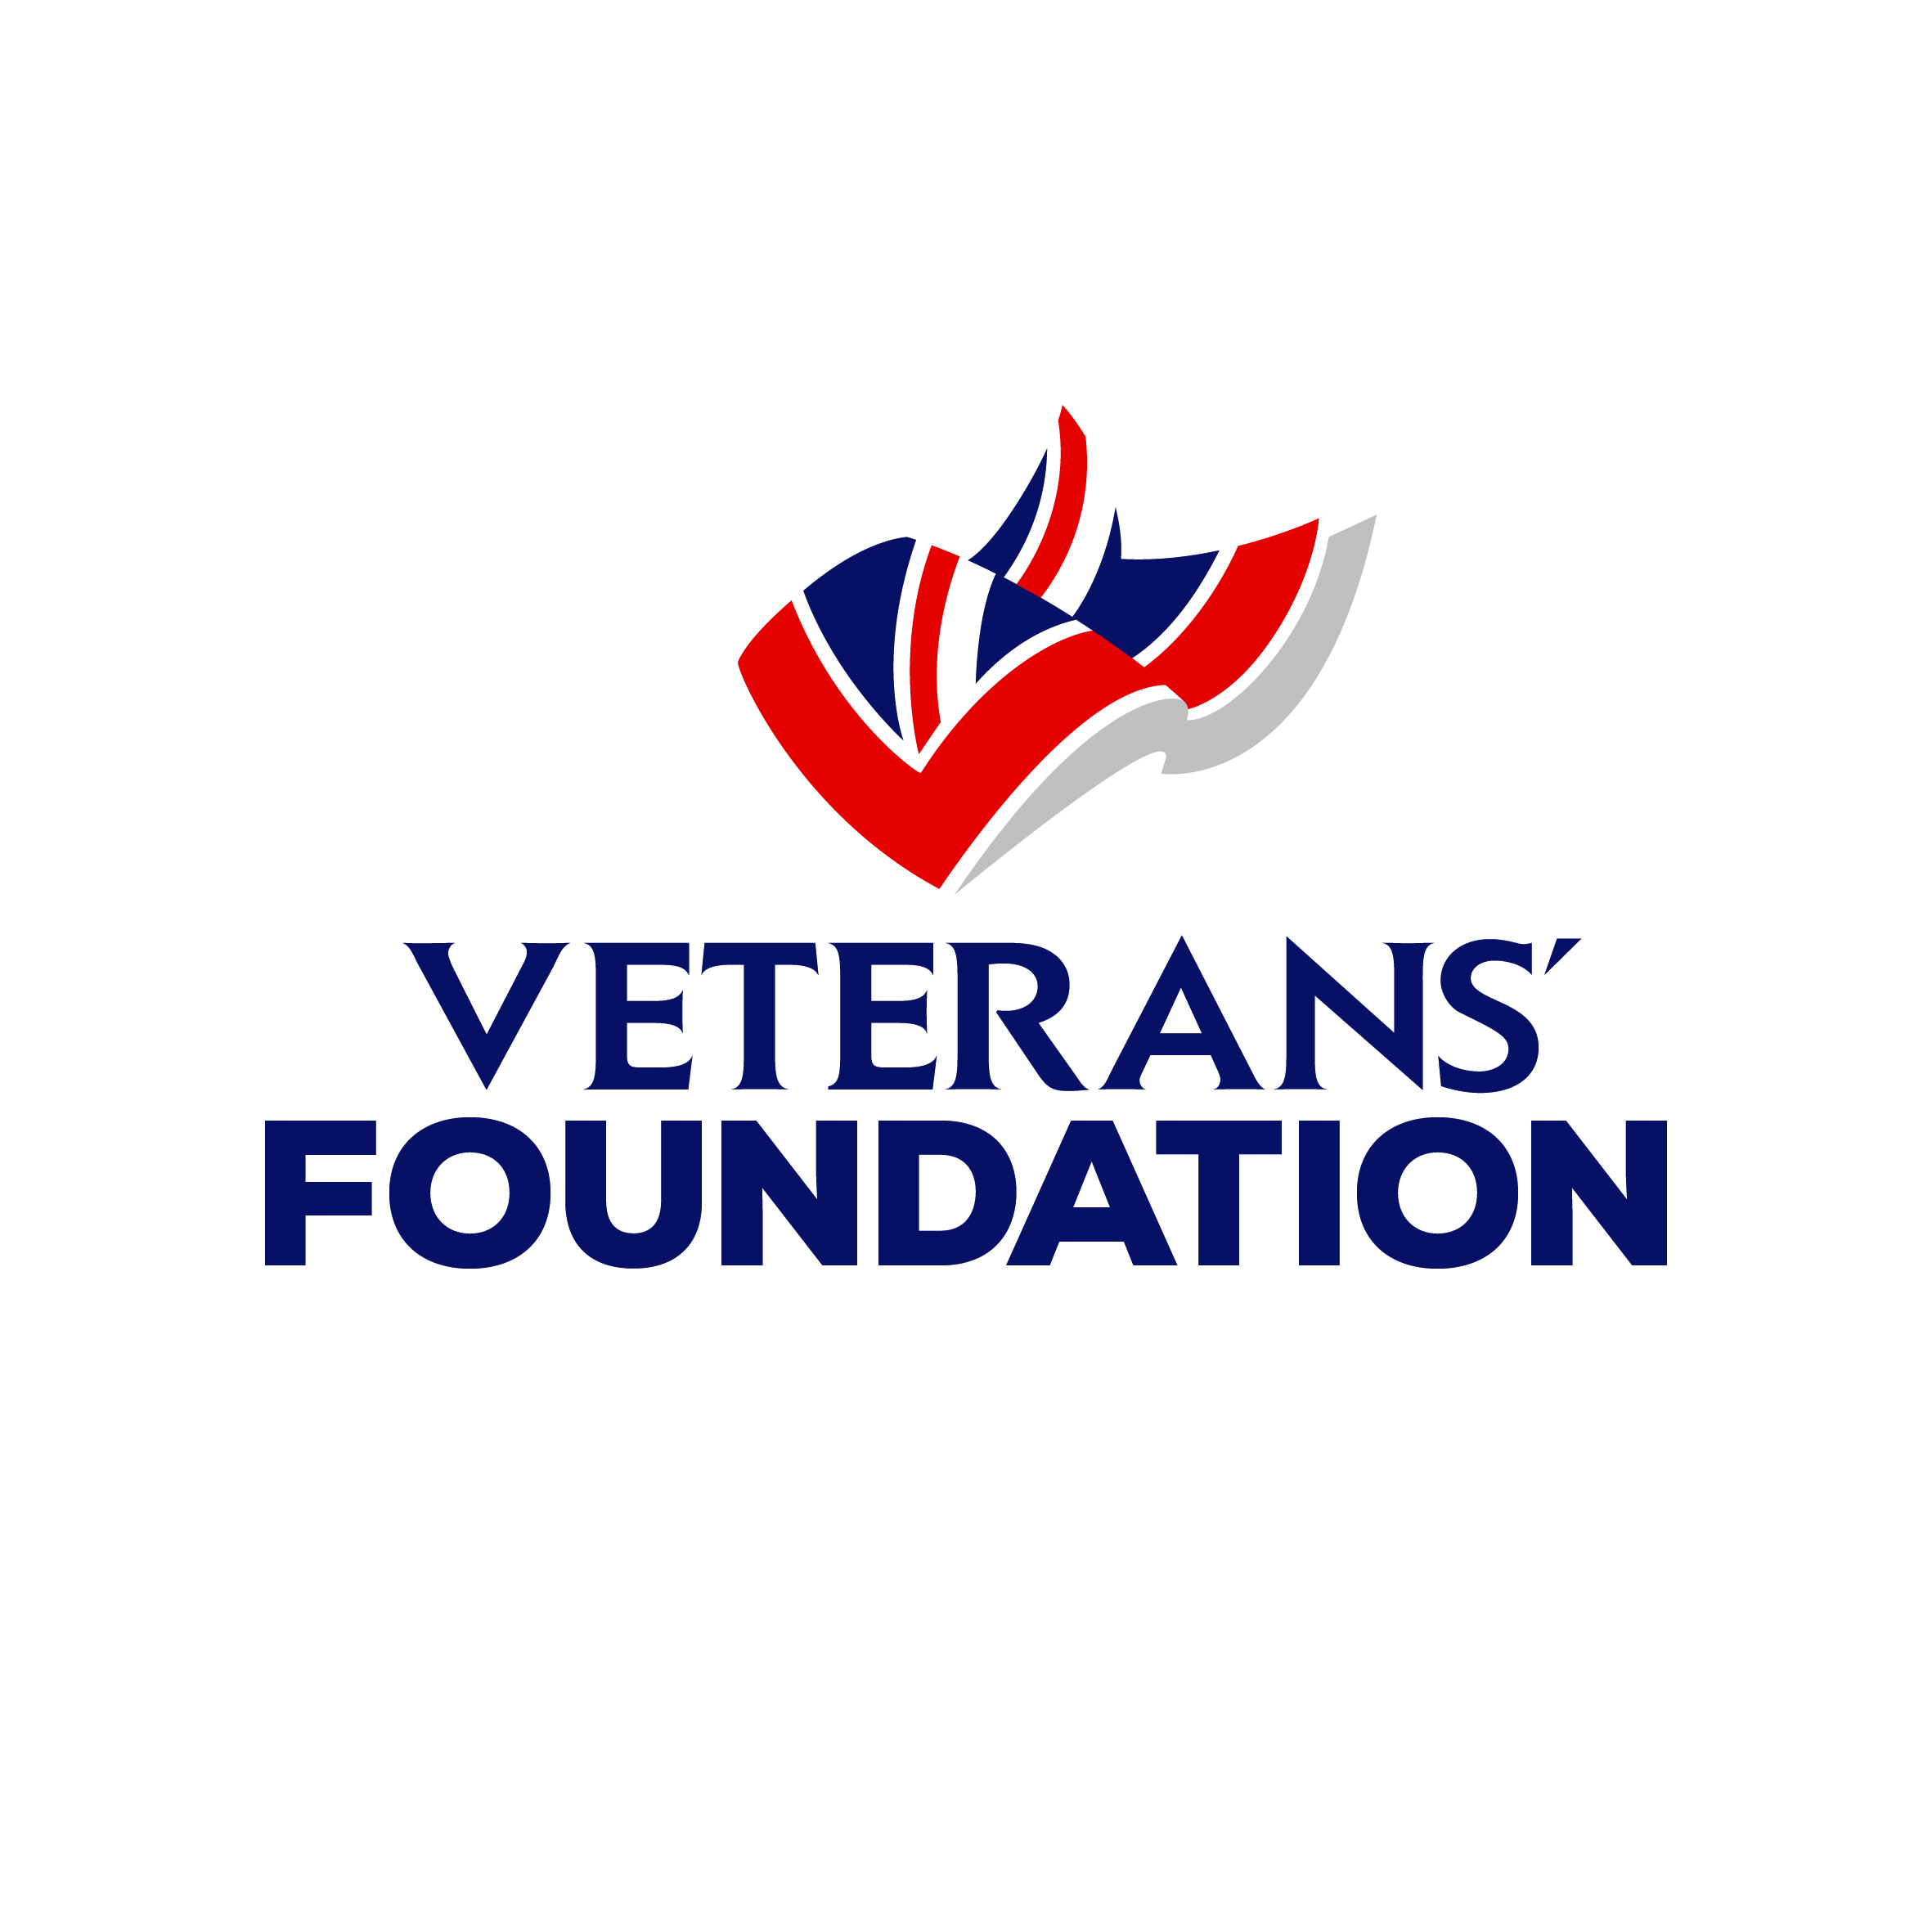 VETERANS' FOUNDATION PROVIDES A TONIC FOR THE HEALTH AND WELLBEING OF OUR RESIDENTS